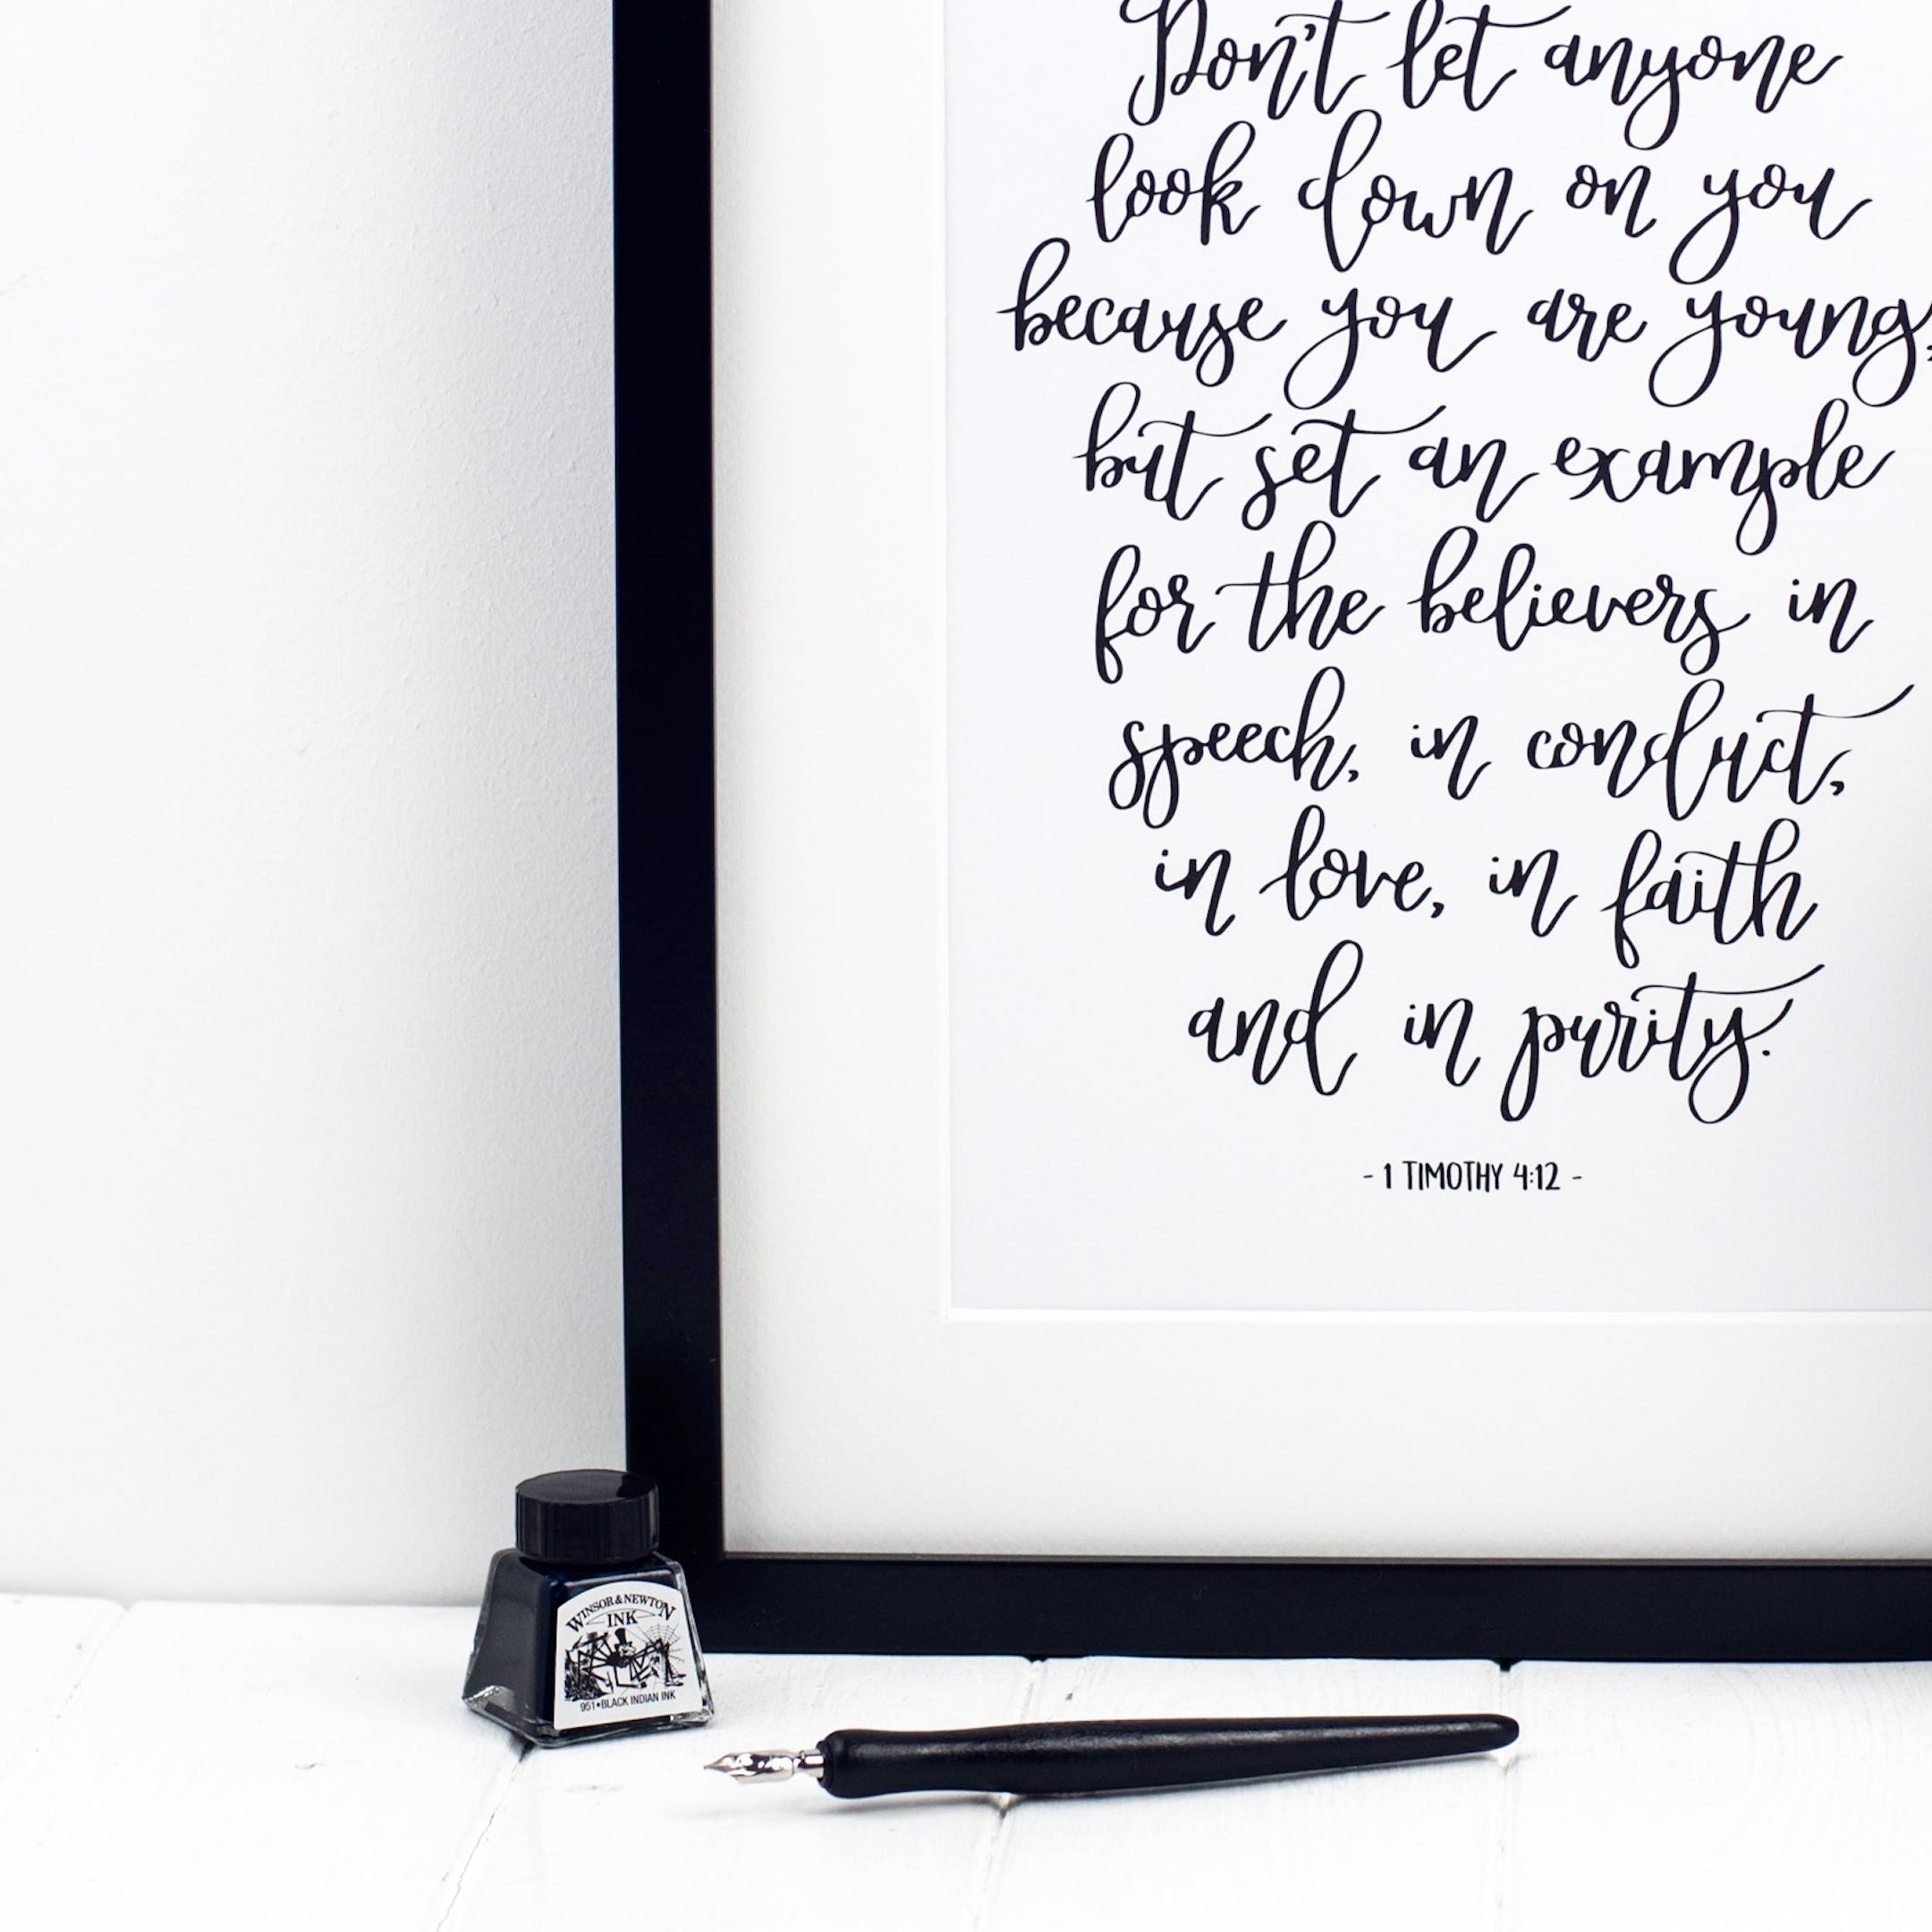 1 Timothy 4:12 Print - Don't Let Anyone Look Down On You - Izzy and Pop